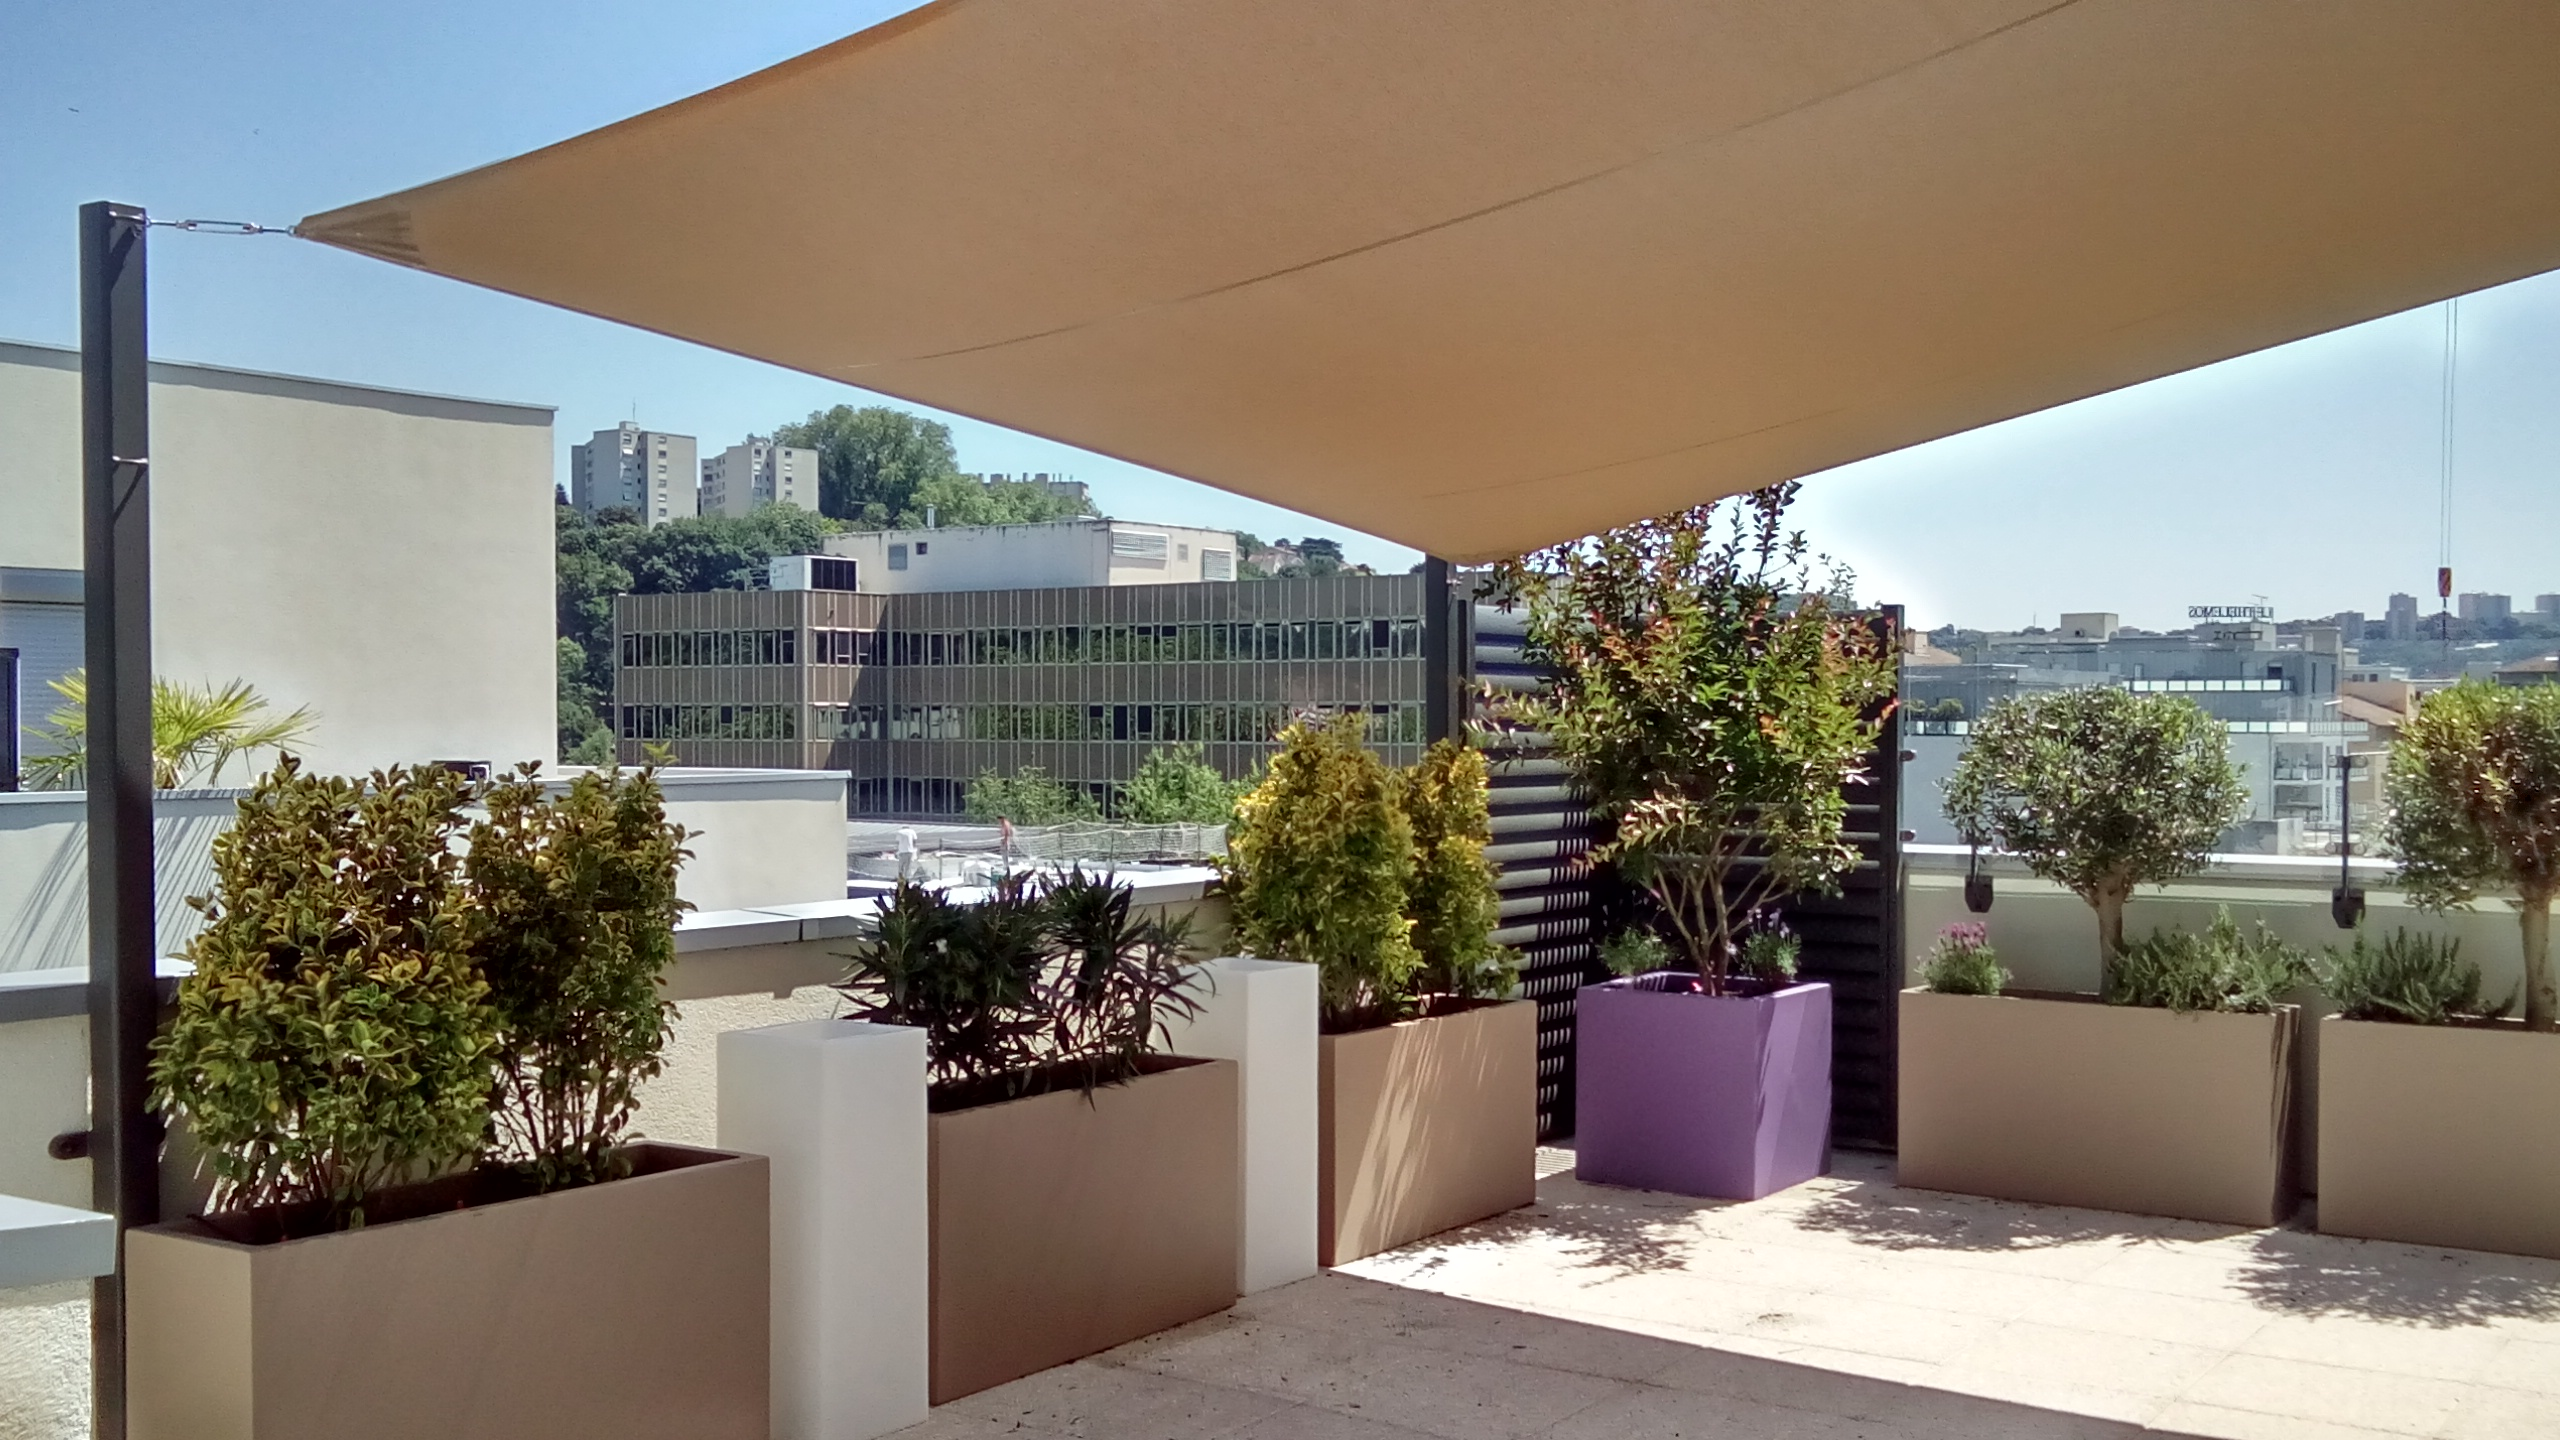 Stunning amenagement d une terrasse images ridgewayng for Amenagement de terrasse